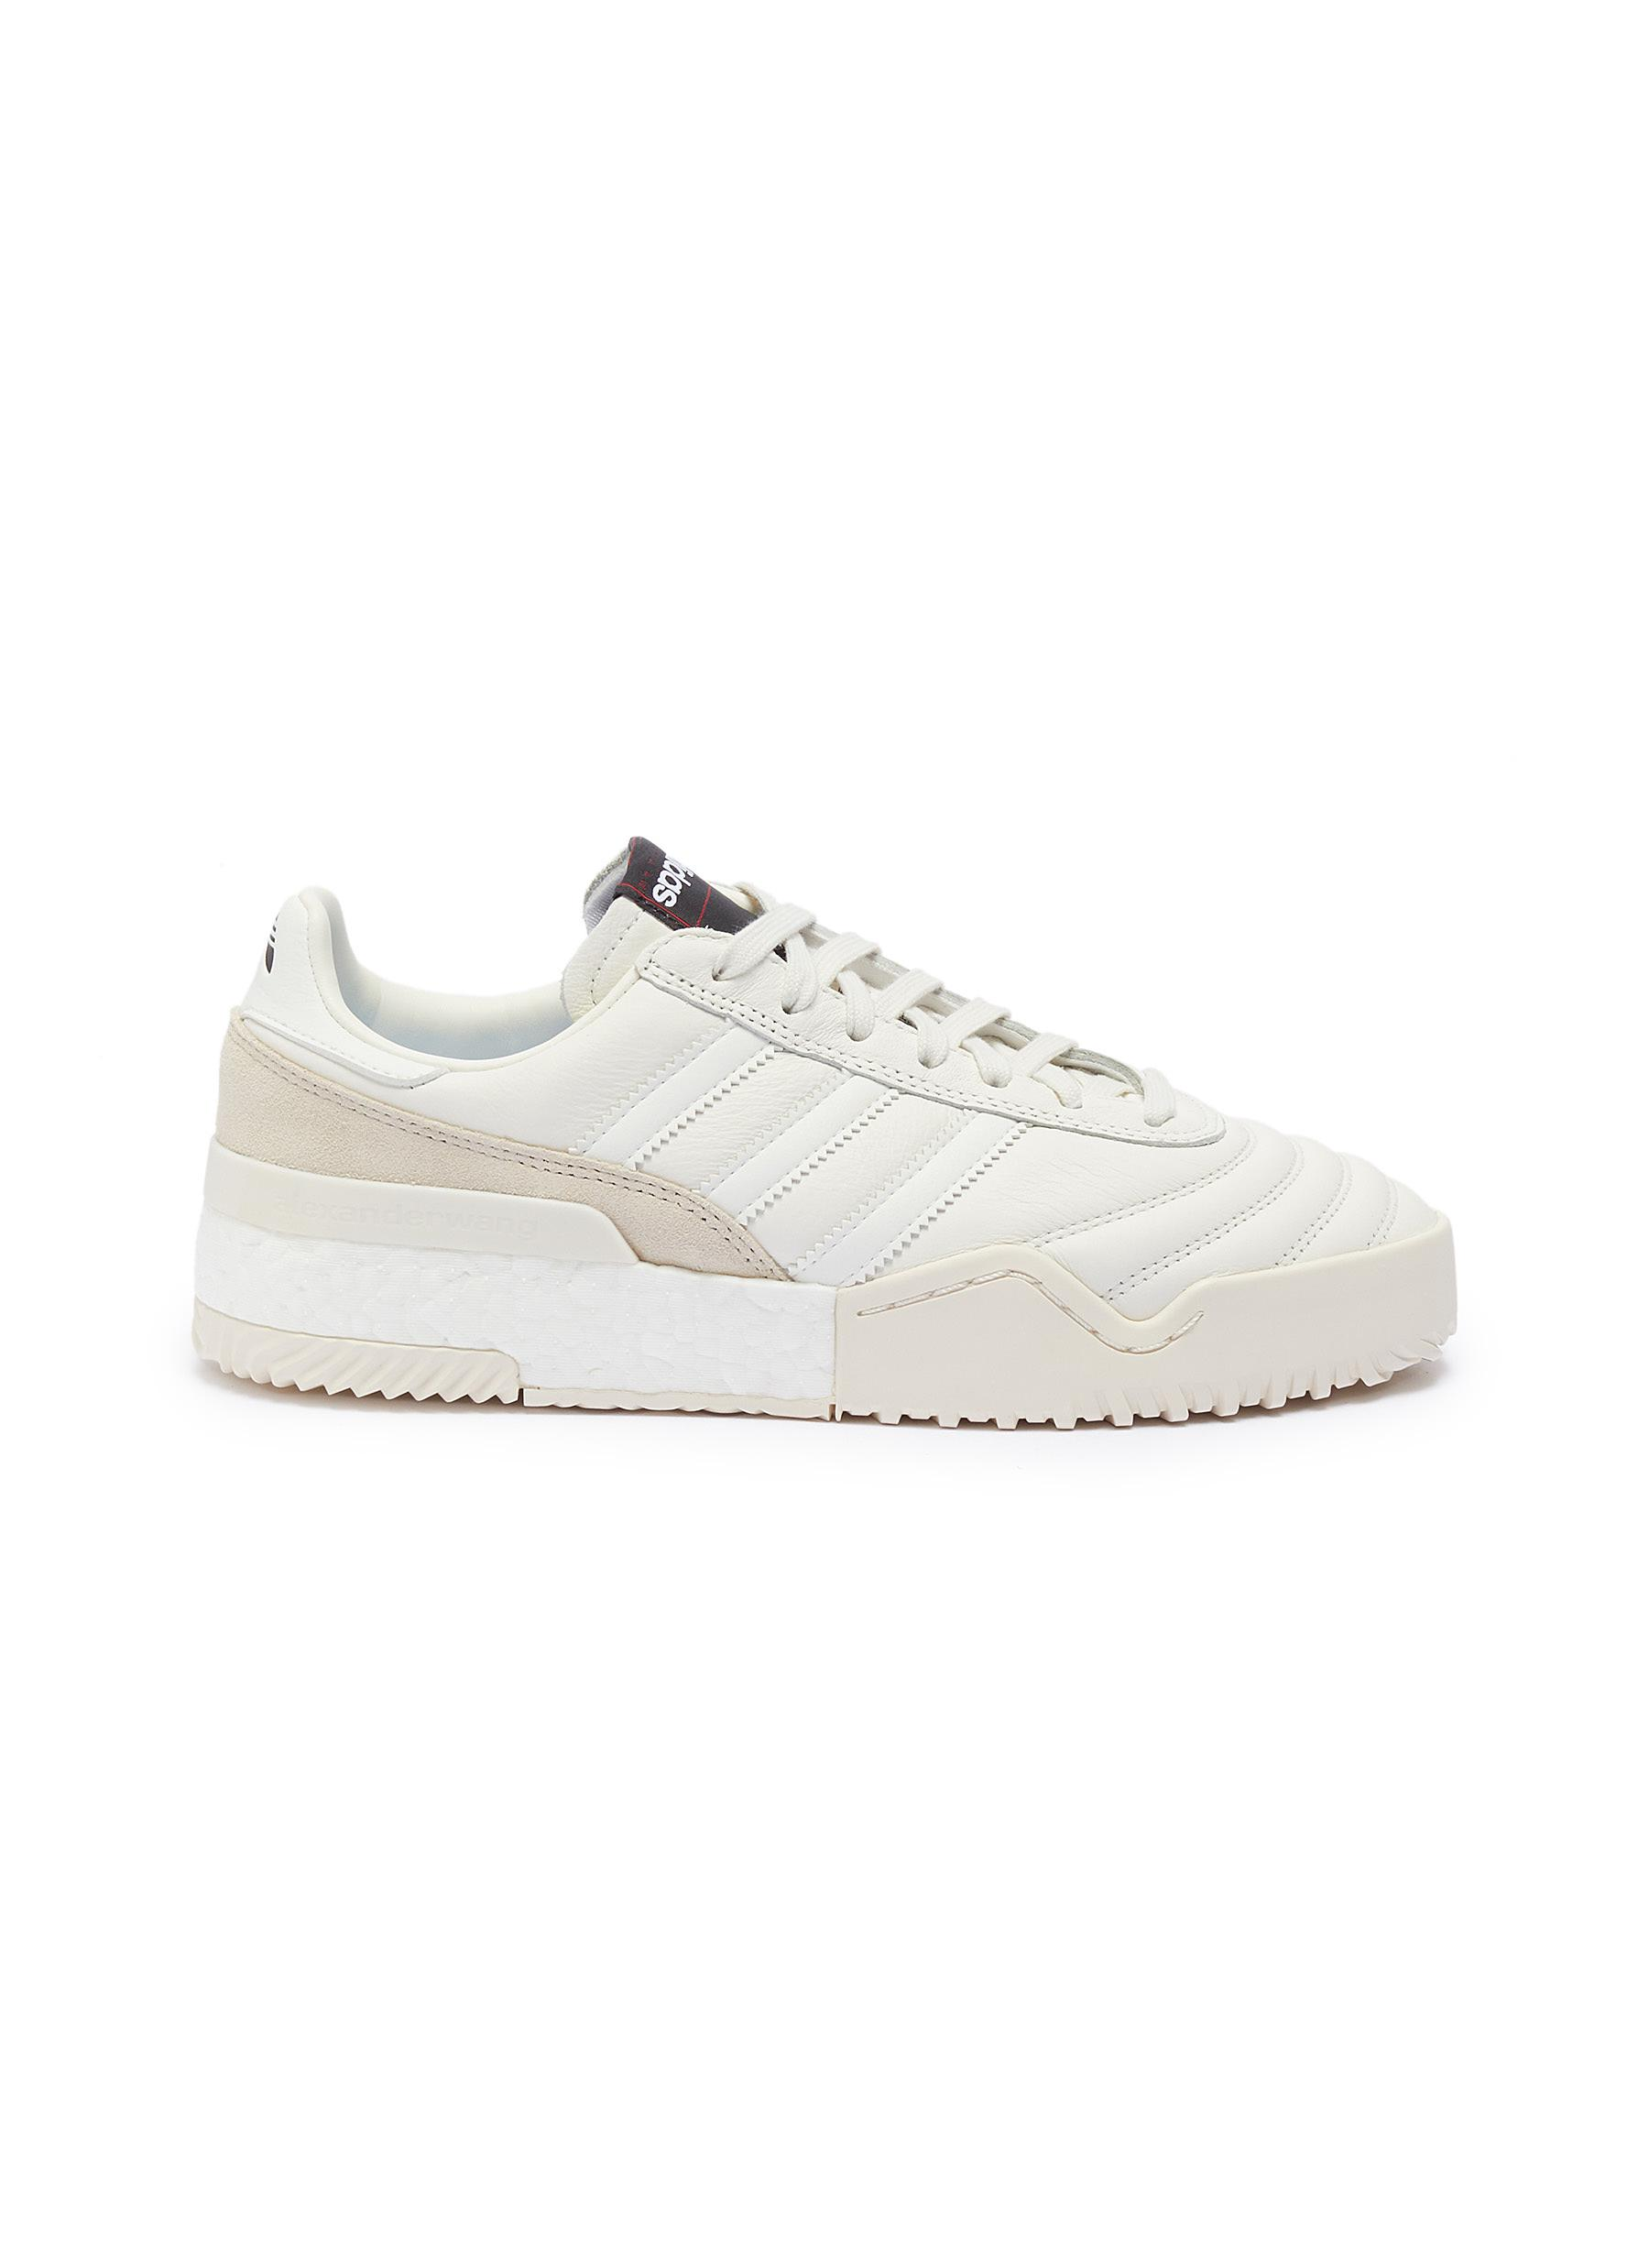 Ball Soccer panelled leather sneakers by Adidas Originals By Alexander Wang